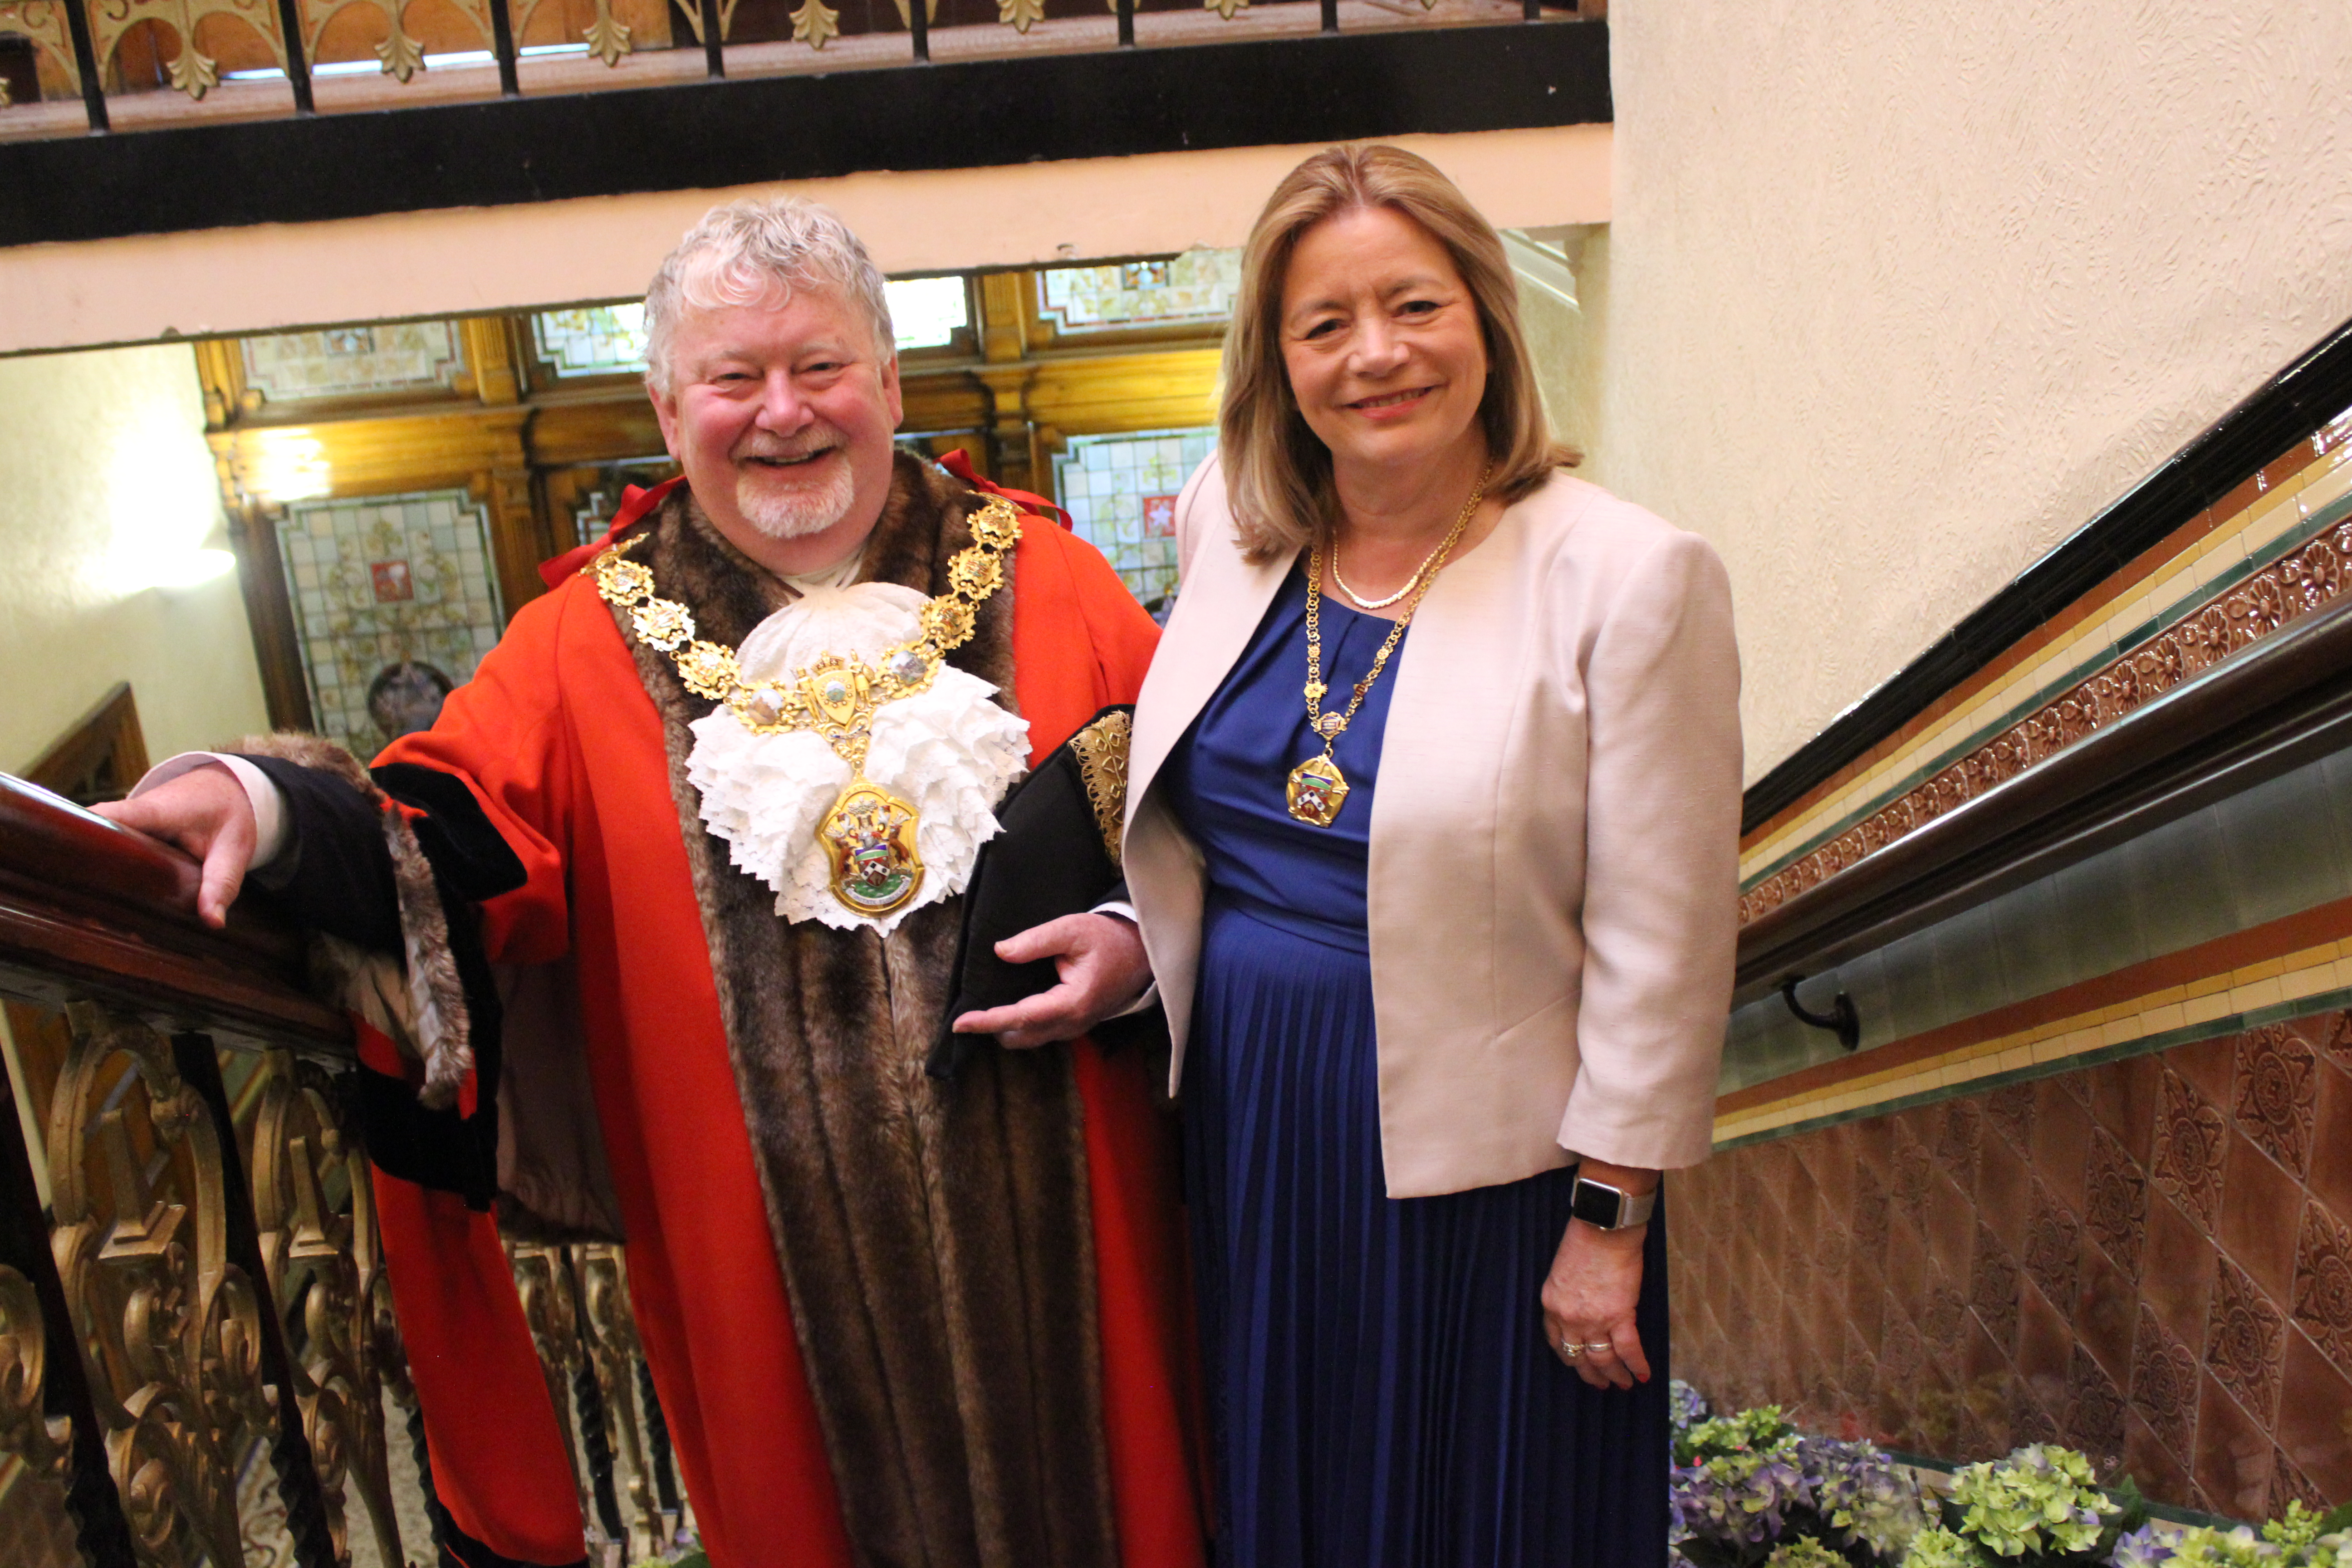 The Mayor of Pendle invites you to see inside Nelson Town Hall